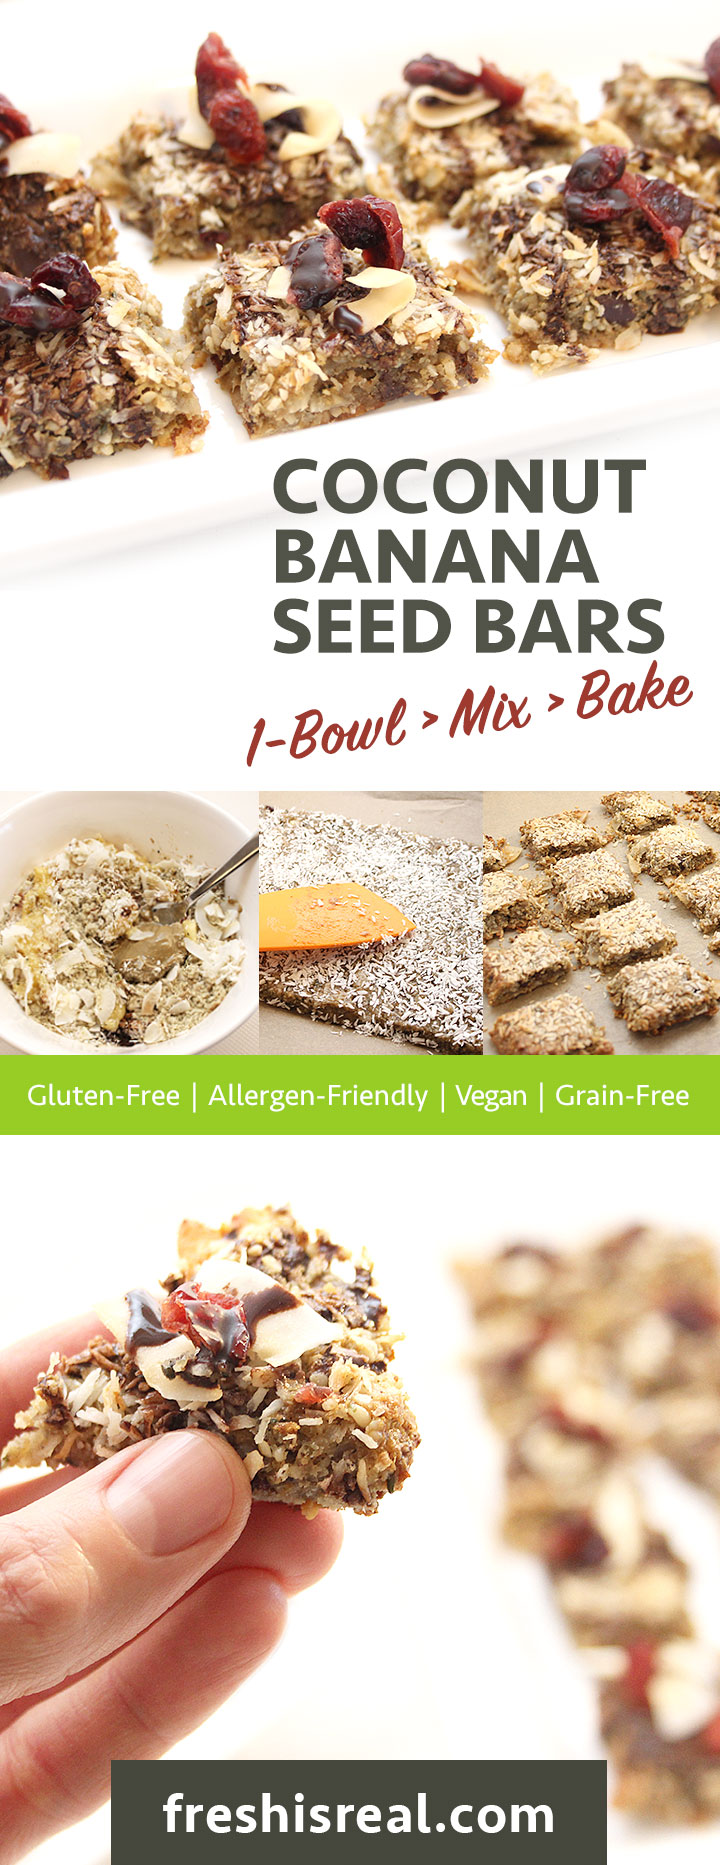 >> Must try Coconut Banana Seed Bars recipe! 1-Bowl > Mix > Bake - Ready in 45 minutes. Gluten-Free | Allergen-Friendly | Vegan | Grain-Free #freshisreal #healthytreats